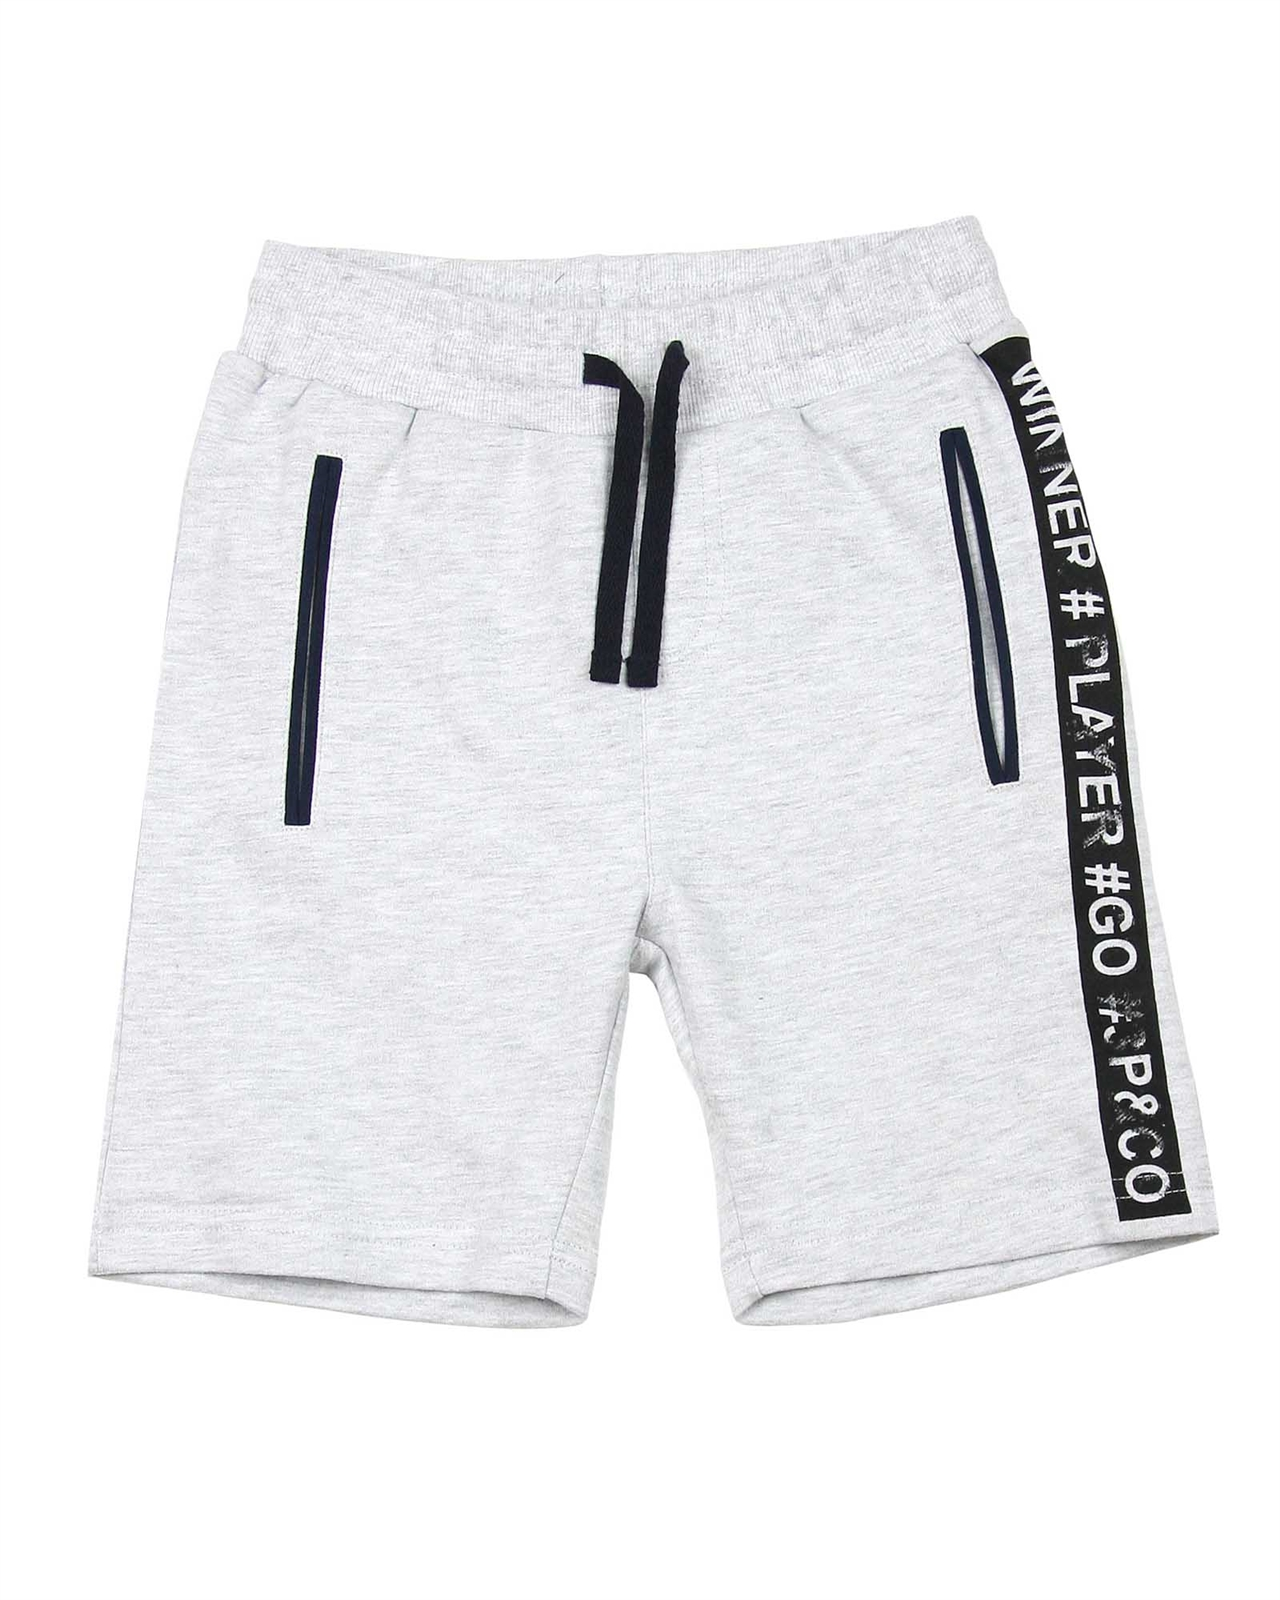 ff53faa1cd 3POMMES Boy's Jogging Shorts Cargo Graphic, Sizes 4-12